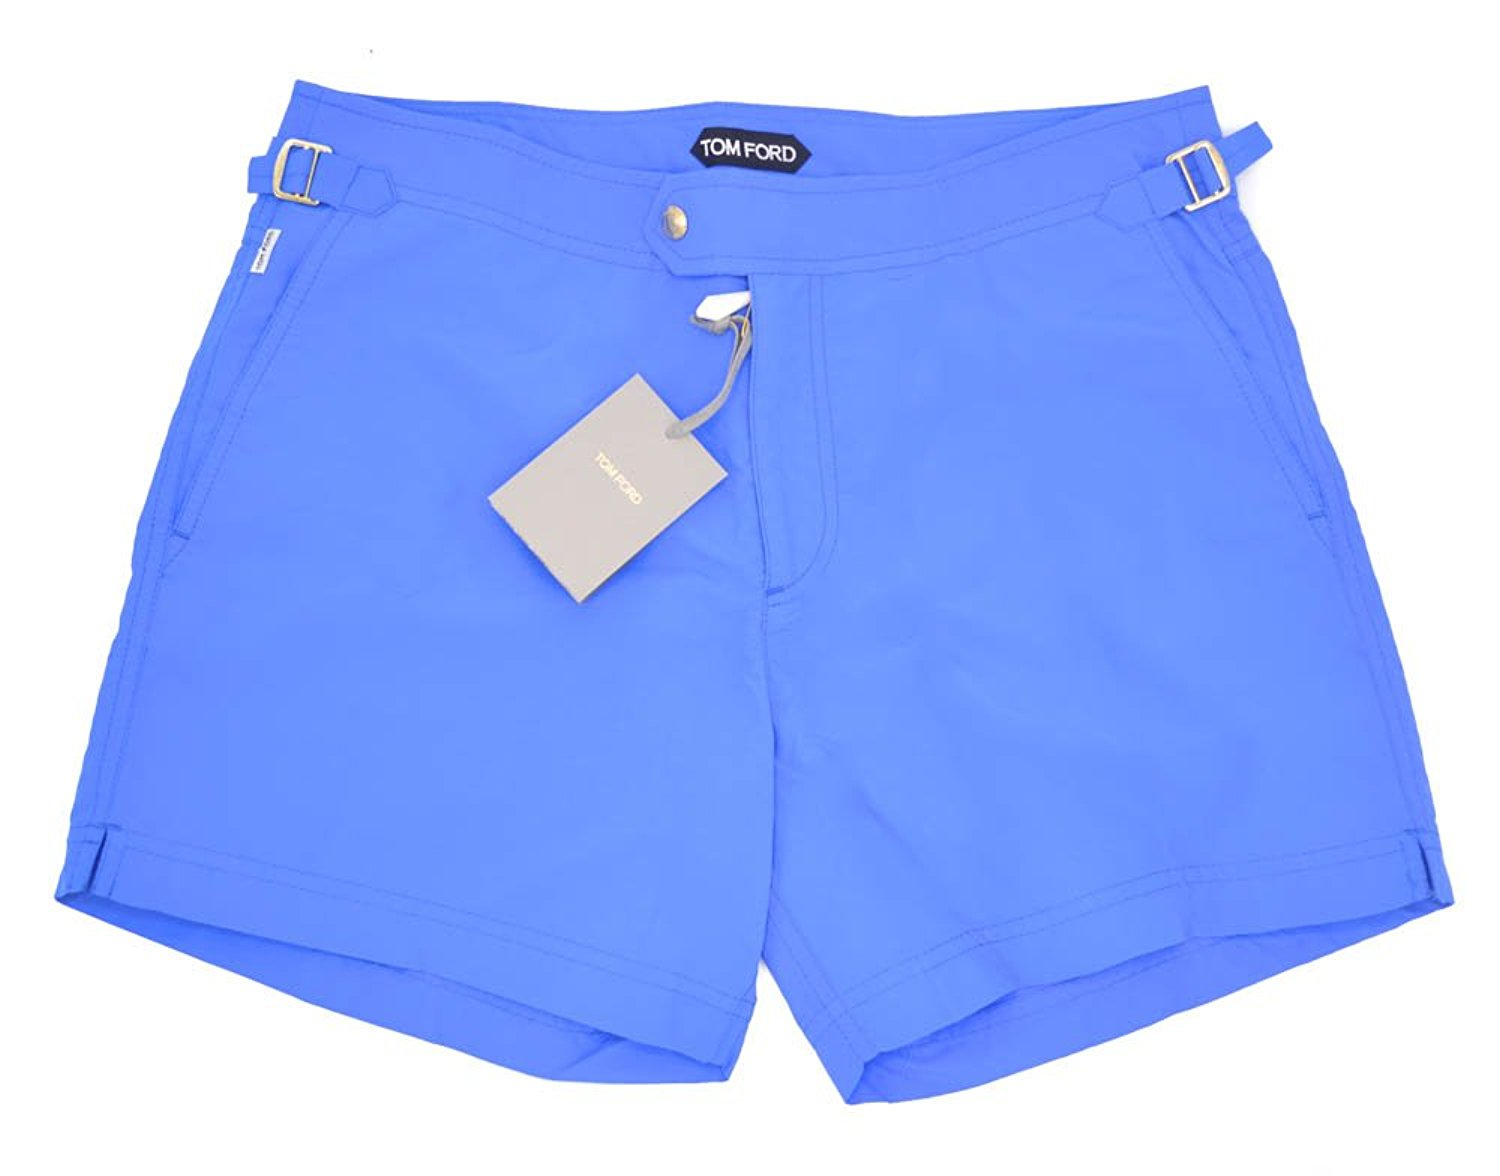 Tom Ford Blue Swimming Trucks Shorts Bathing Suit Size 48 Euro 30 U.S.